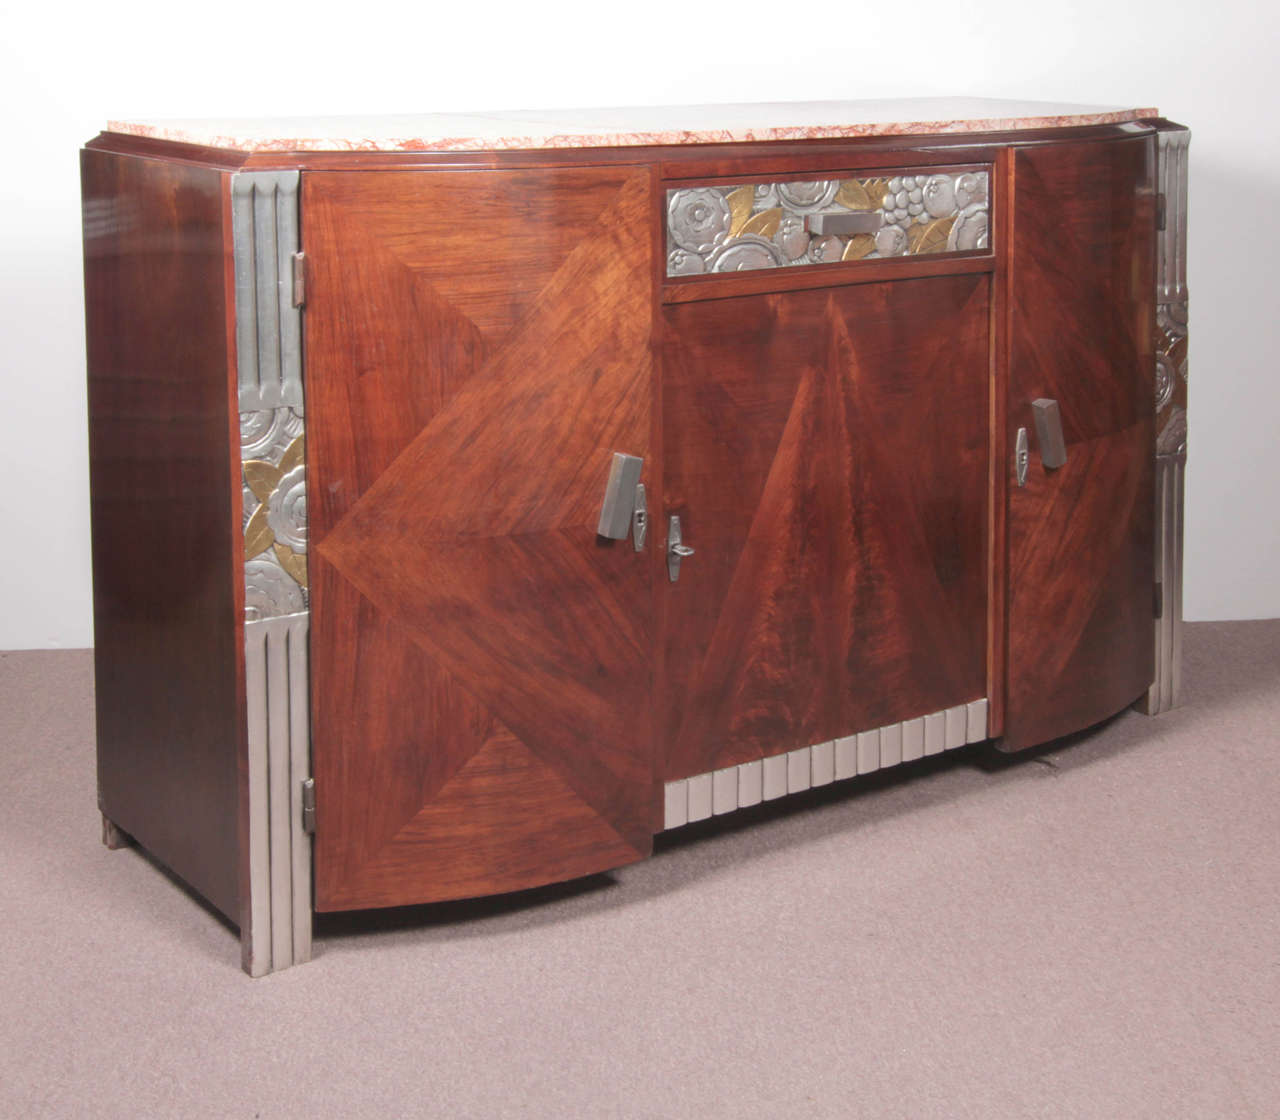 Original French Art Deco carved and inlaid three door cabinet. Beautifully crafted parquetry inlaid doors create a central pyramidal form amidst geometric shapes. The top drawer features a hand carved gold and silver leaf frieze with stylized floral